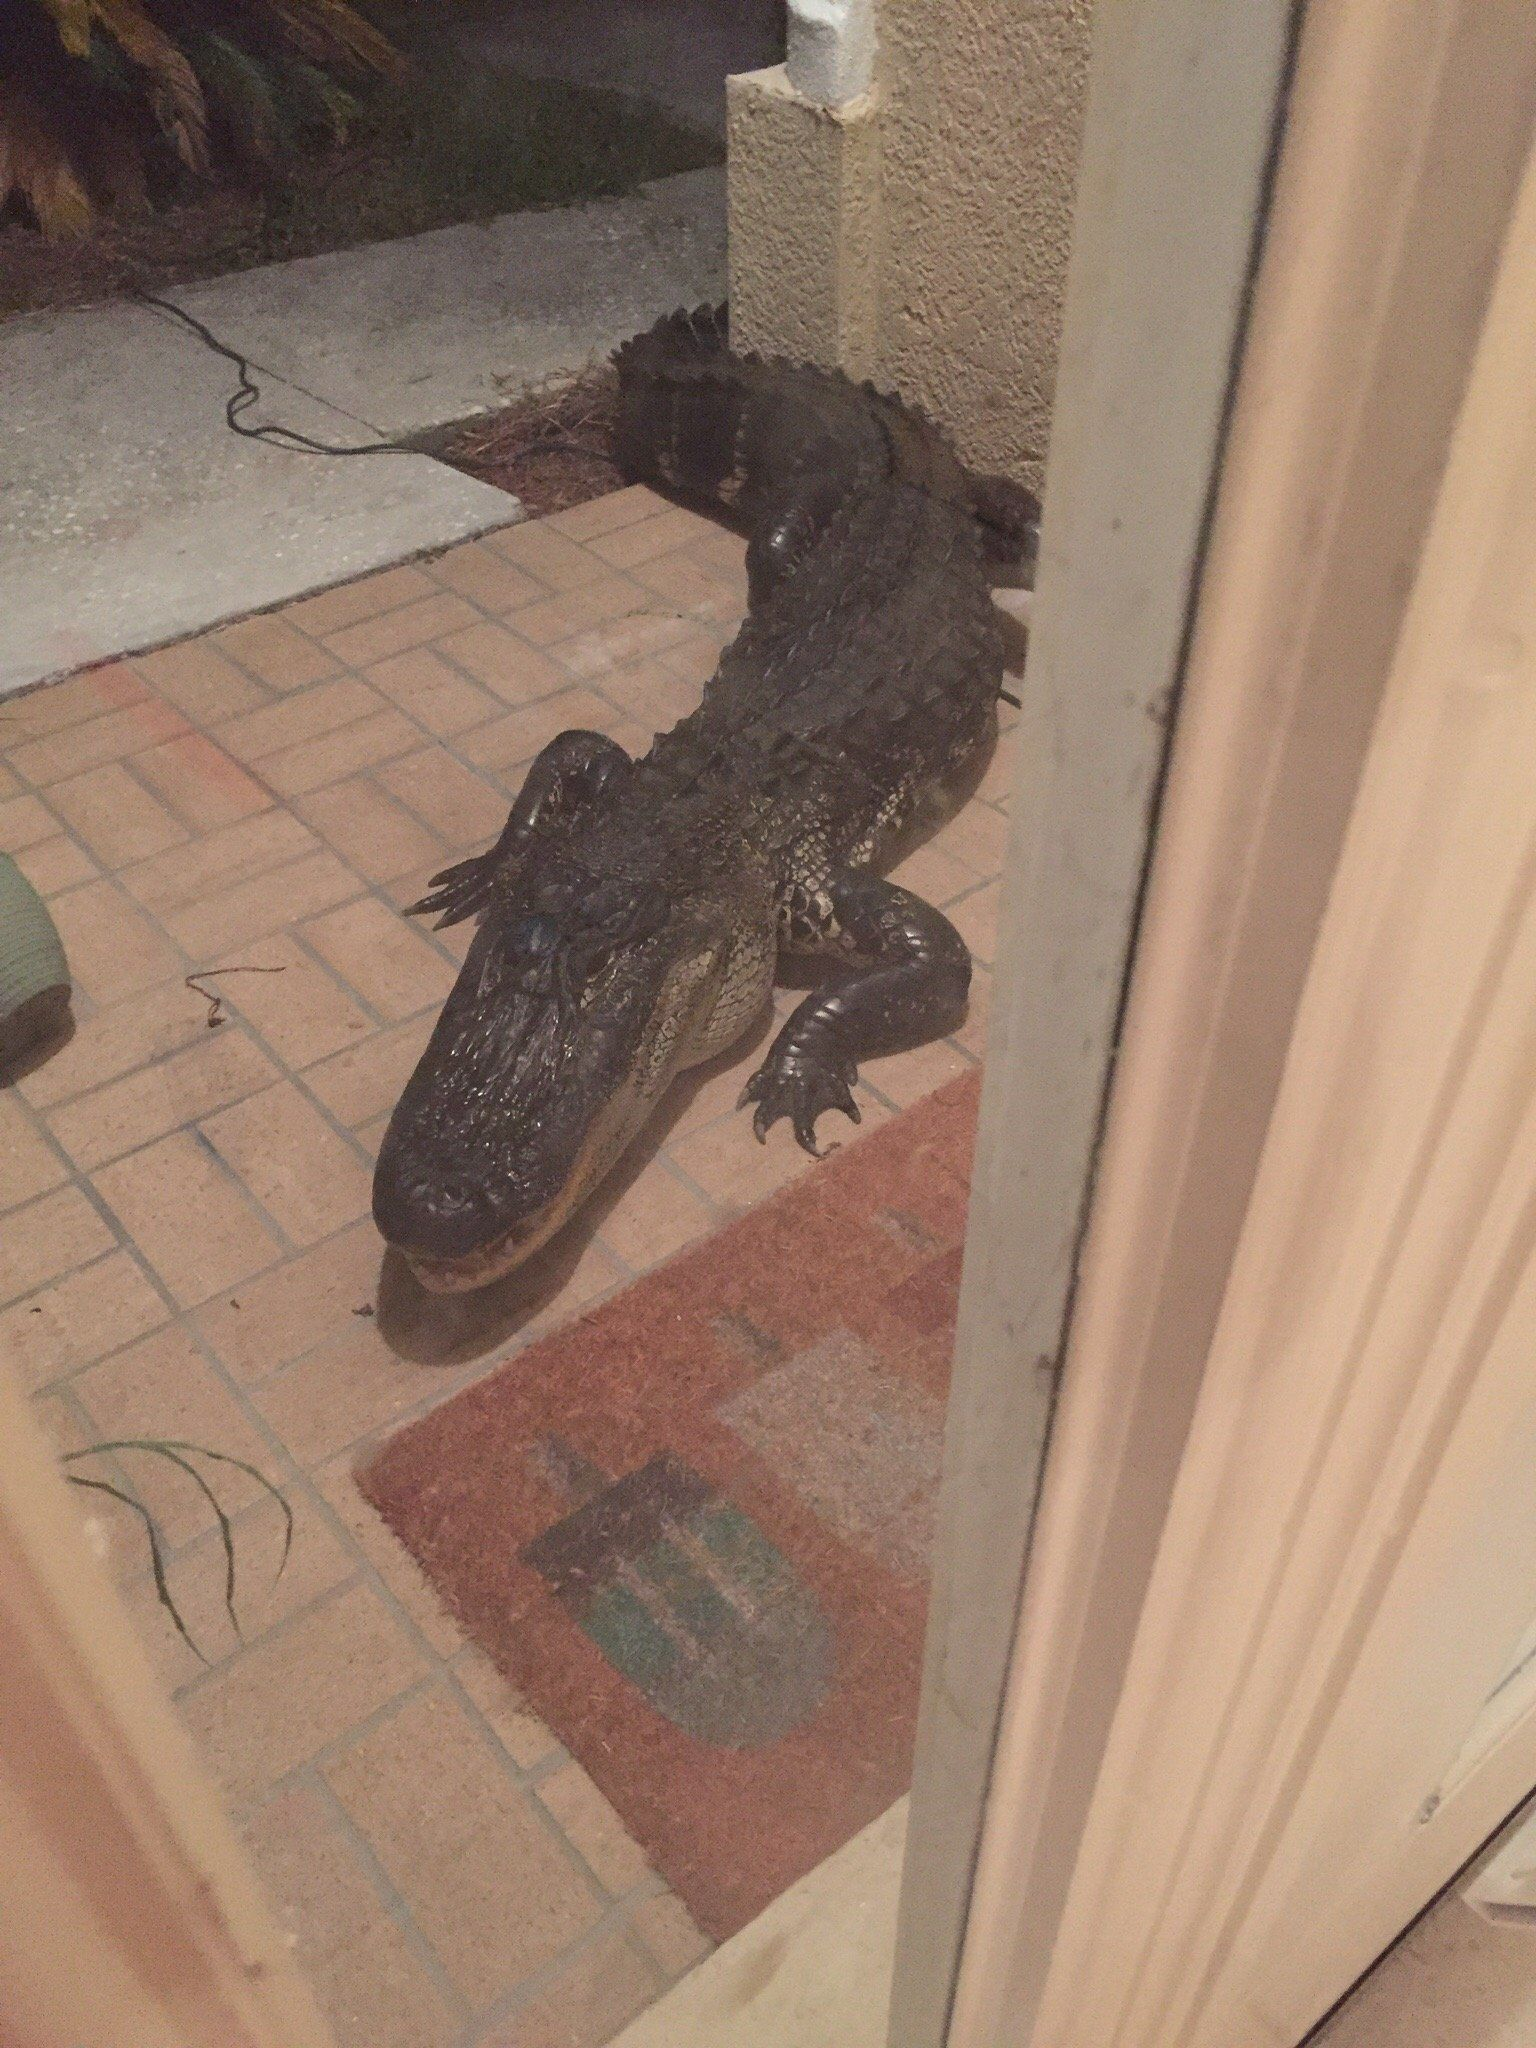 An alligator outside of the front door of Metts Bahadir's home in Lutz, Florida.